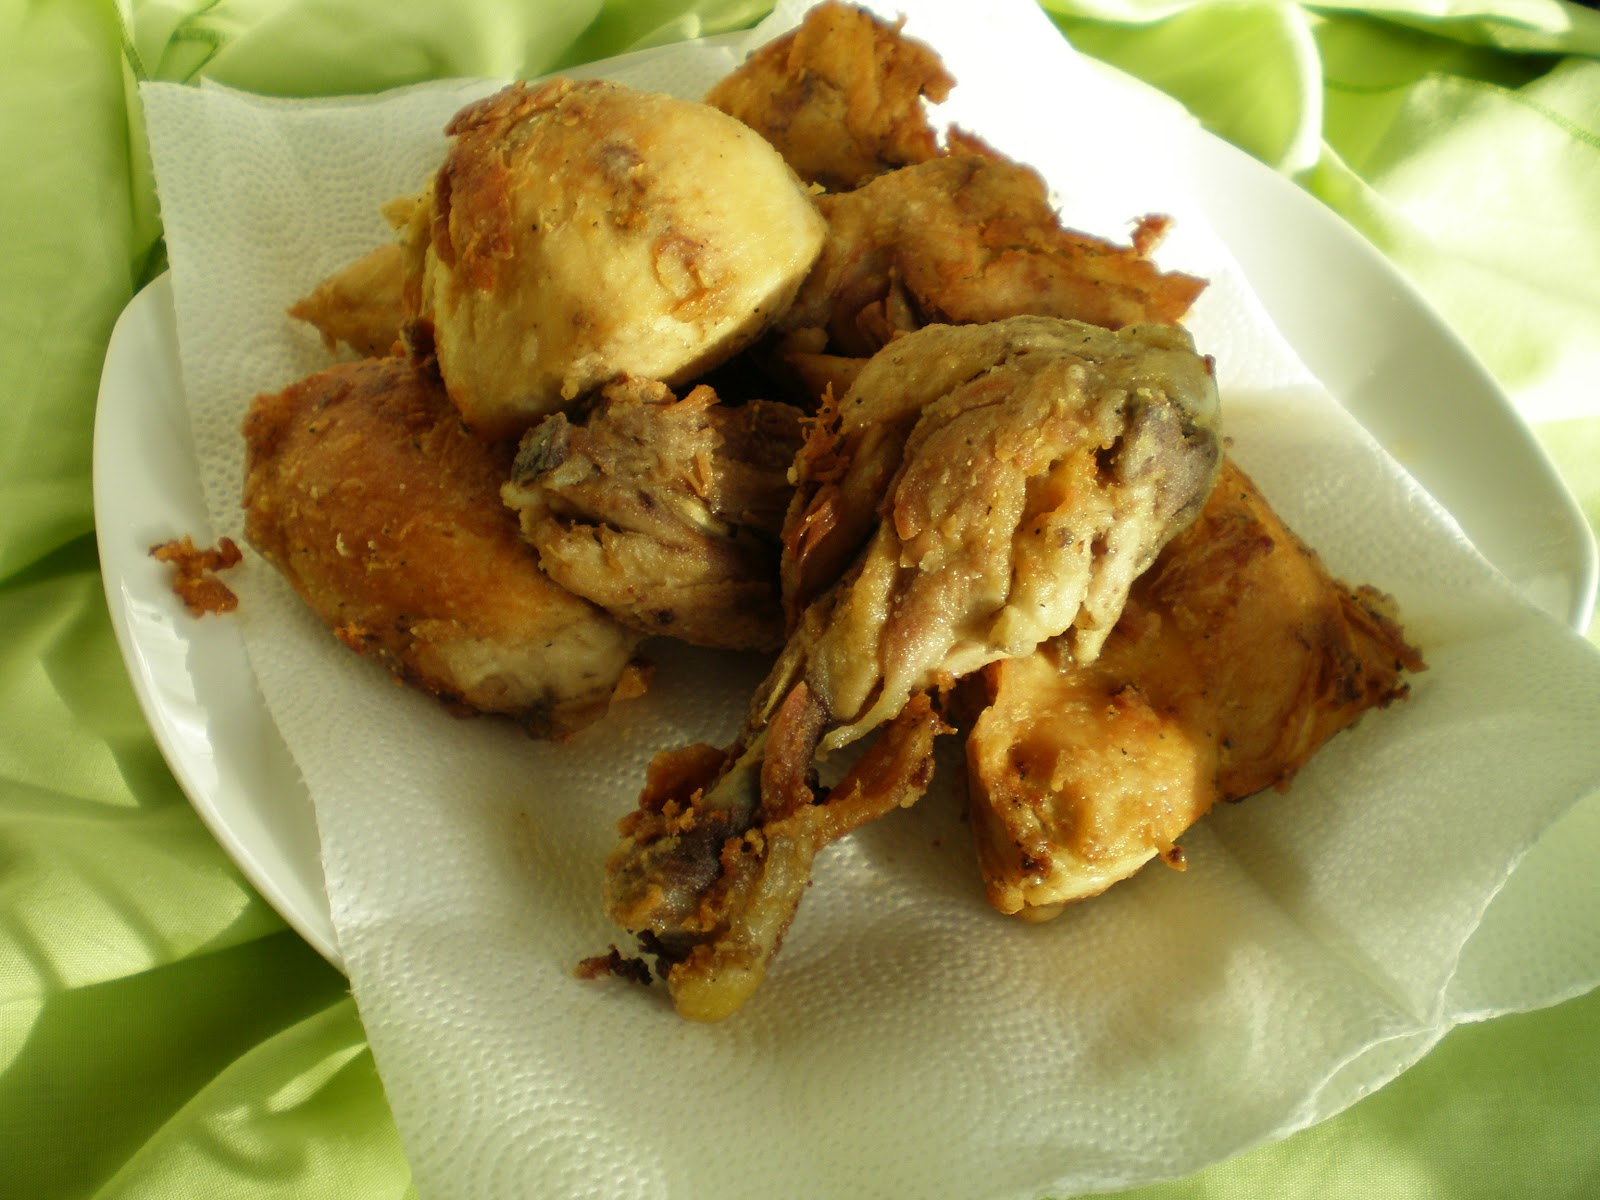 Basil and Rosemary's Kitchen: Fried Boiled Chicken